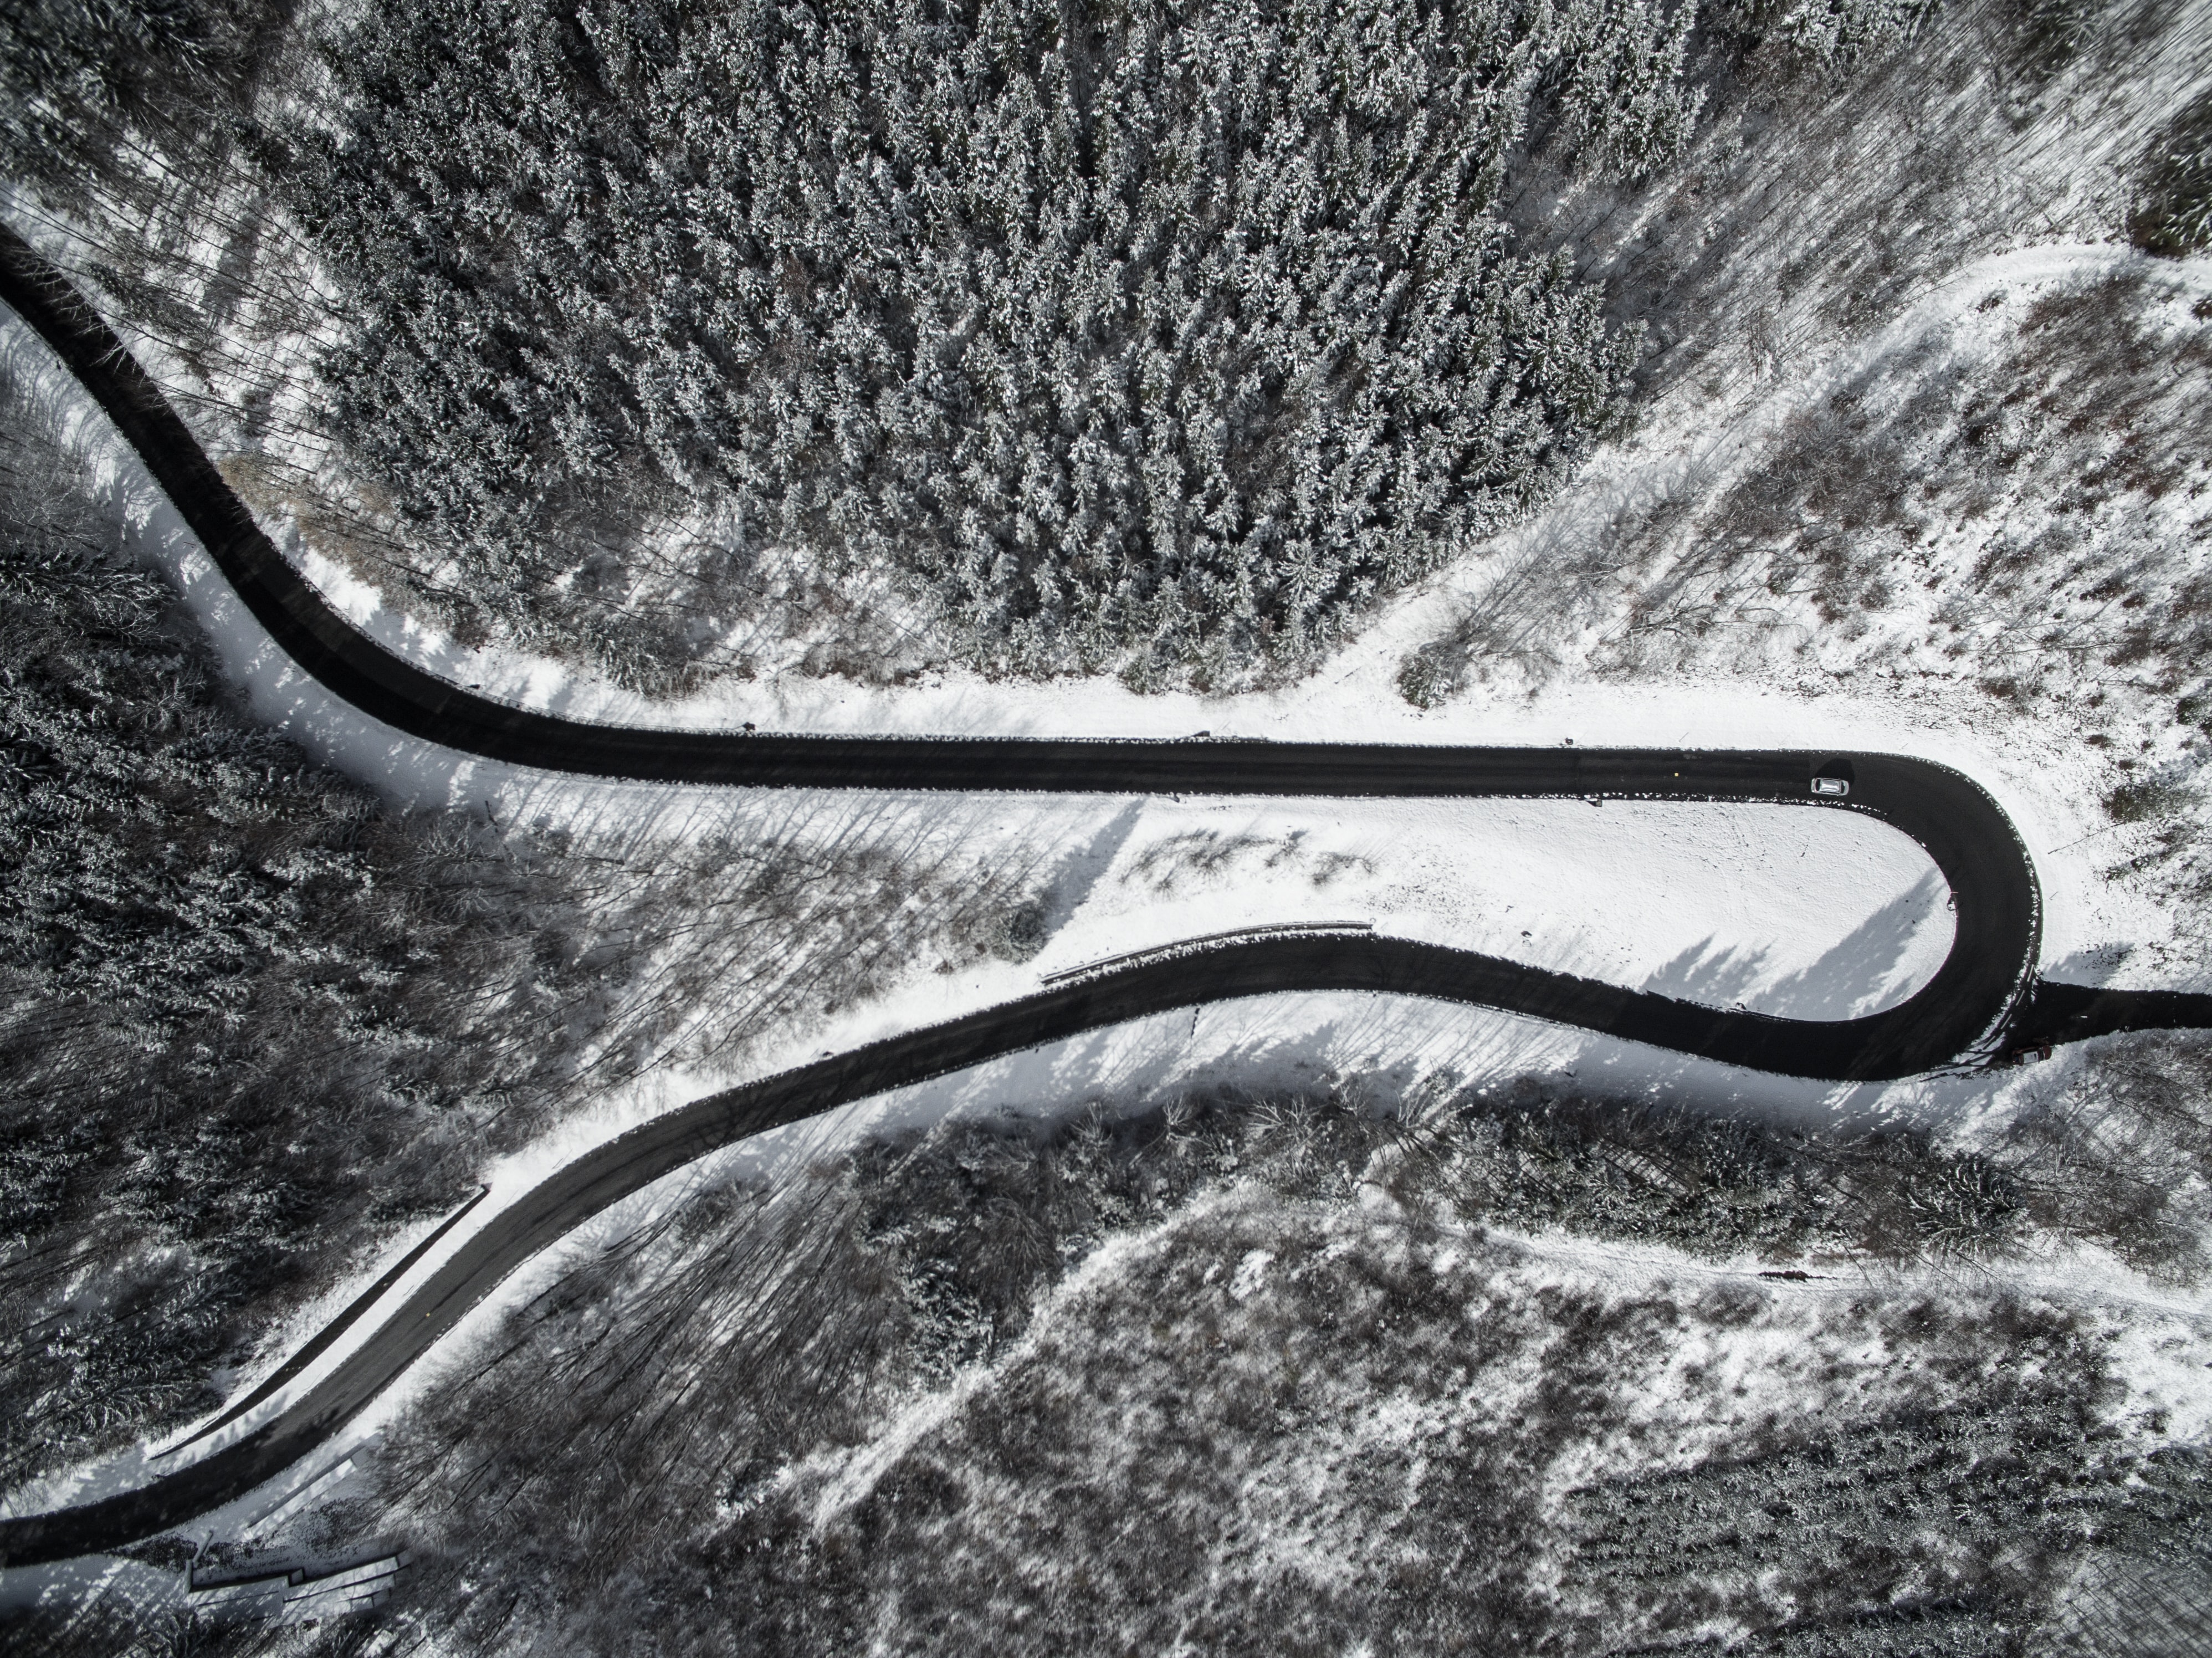 bird's-eye view photography of road